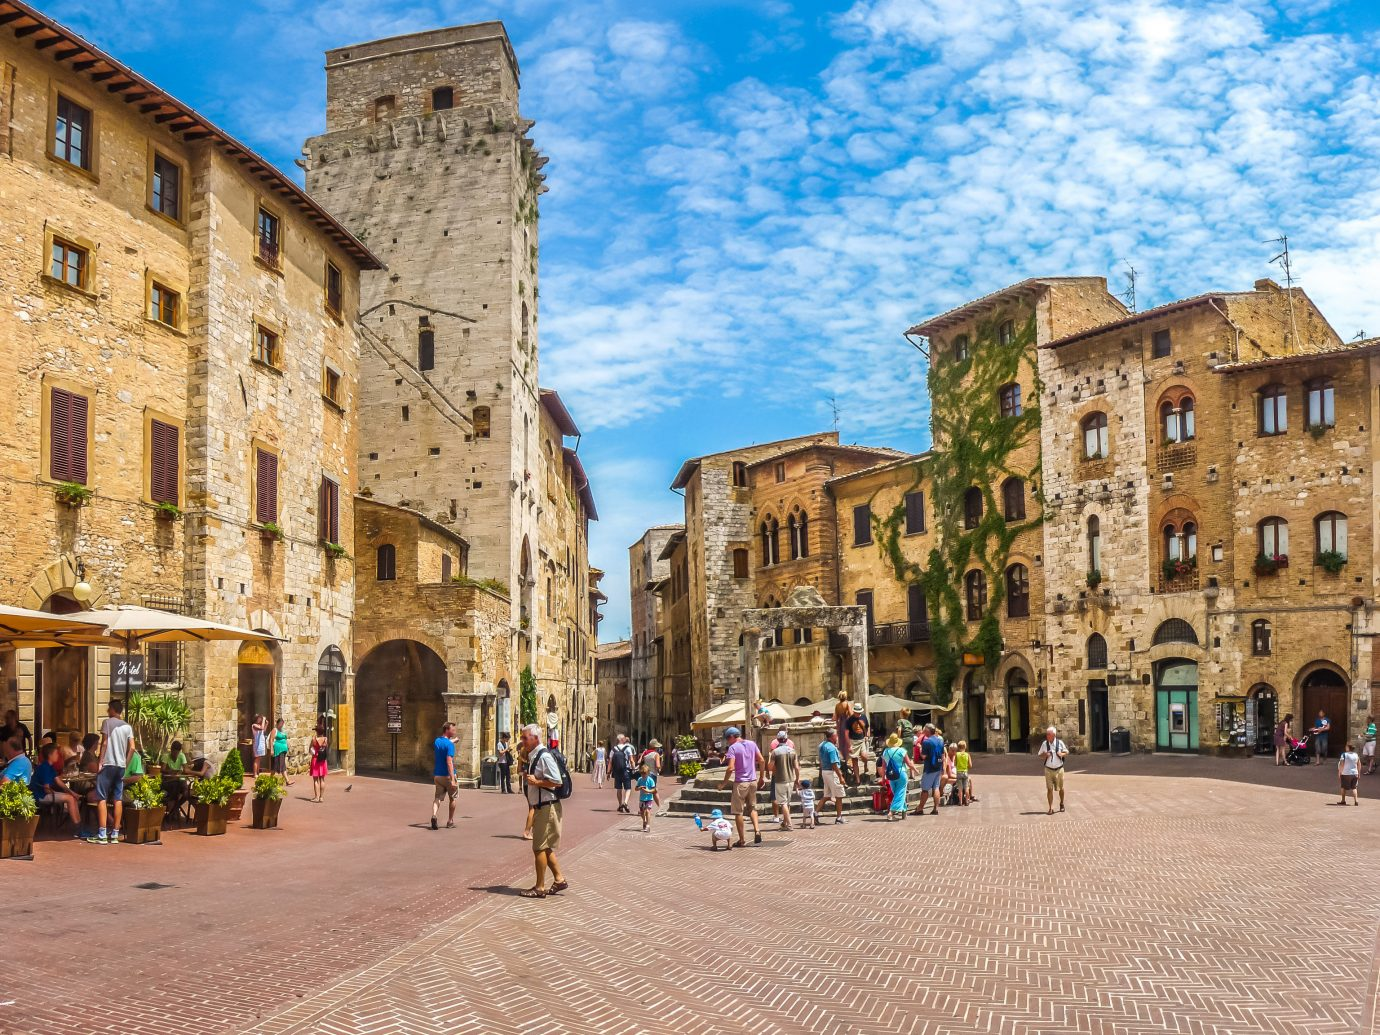 Italy Trip Ideas Town sky City town square landmark plaza urban area neighbourhood street tourism history medieval architecture Downtown building tourist attraction metropolis historic site facade ancient rome palace